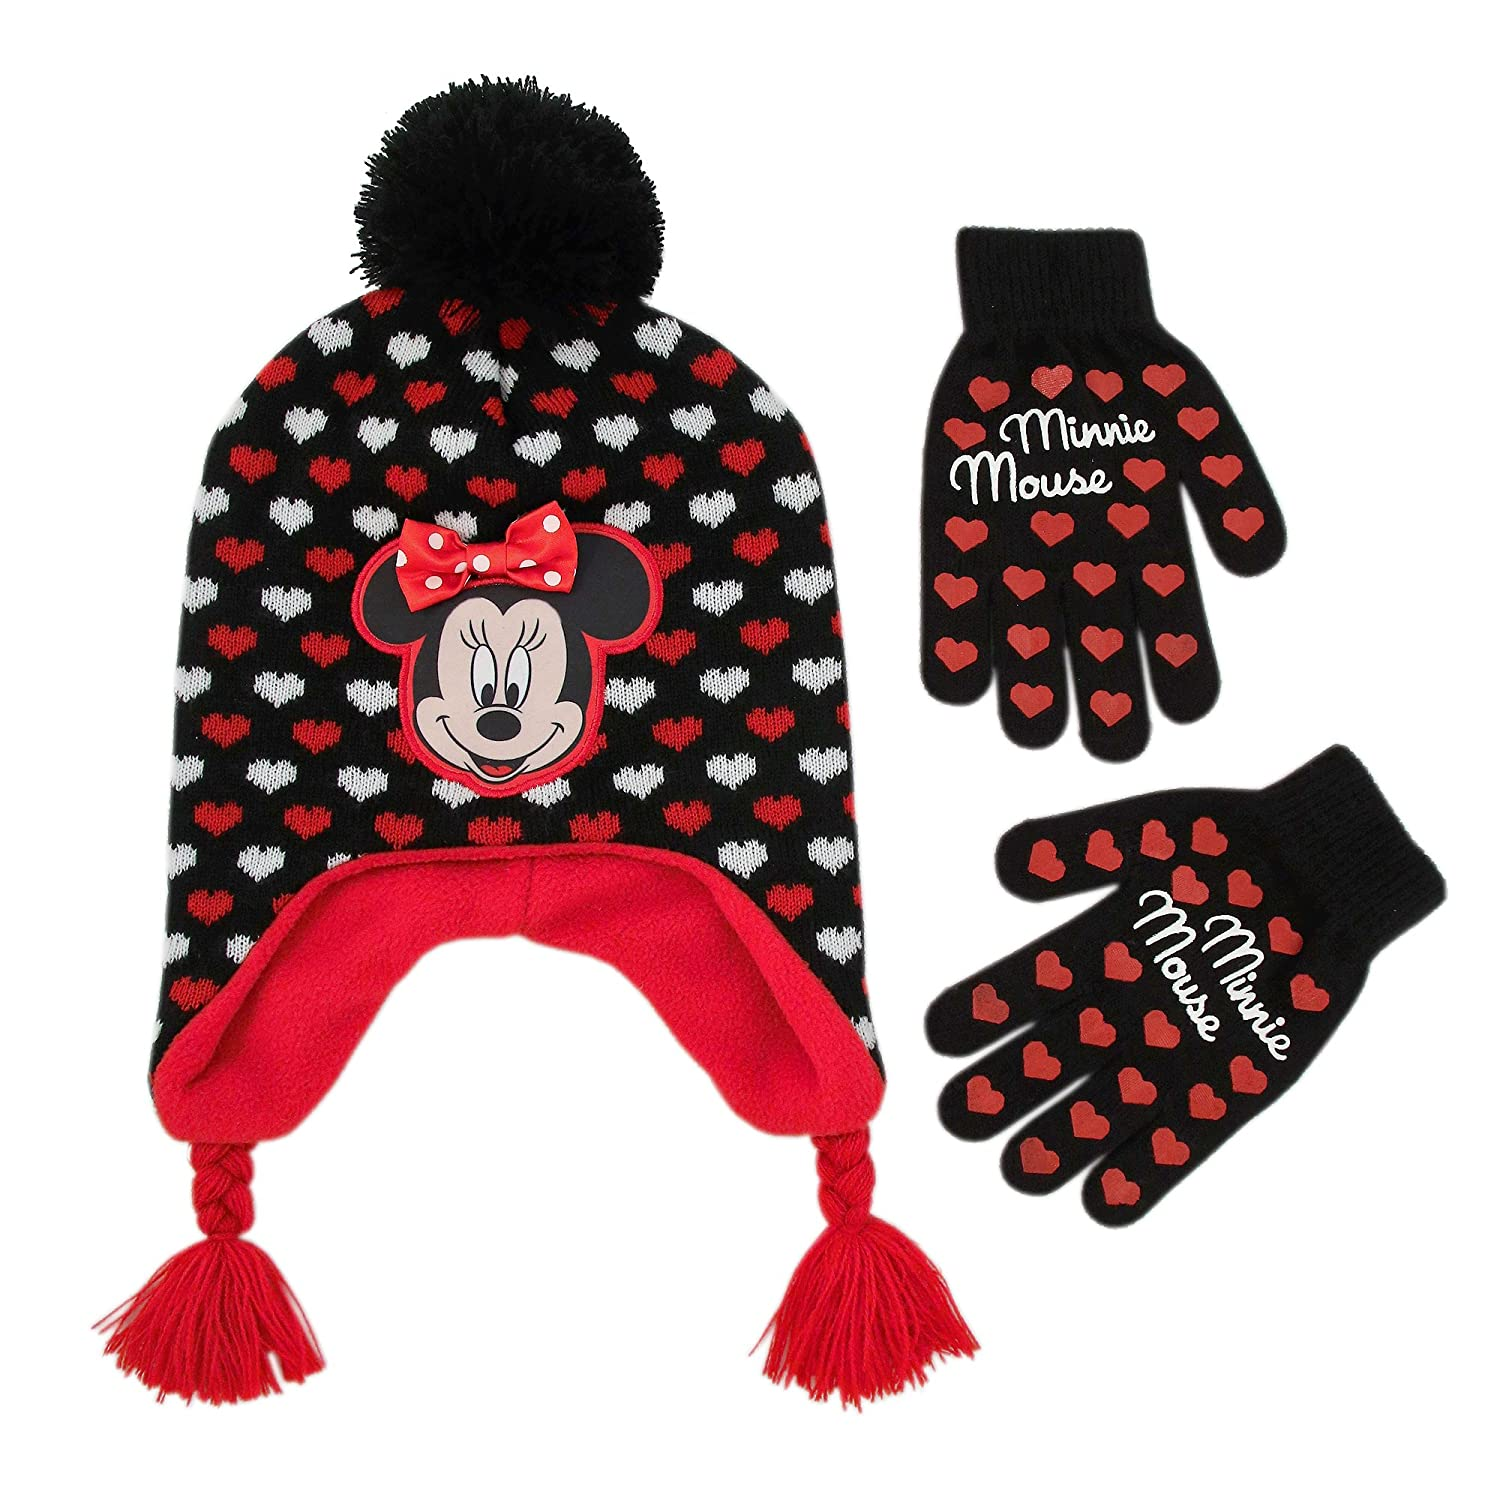 Disney Little Girls Minnie Mouse Character Hat and Gloves Cold Weather Set, Age 4-7 ABG Accessories MNF69608AZ1